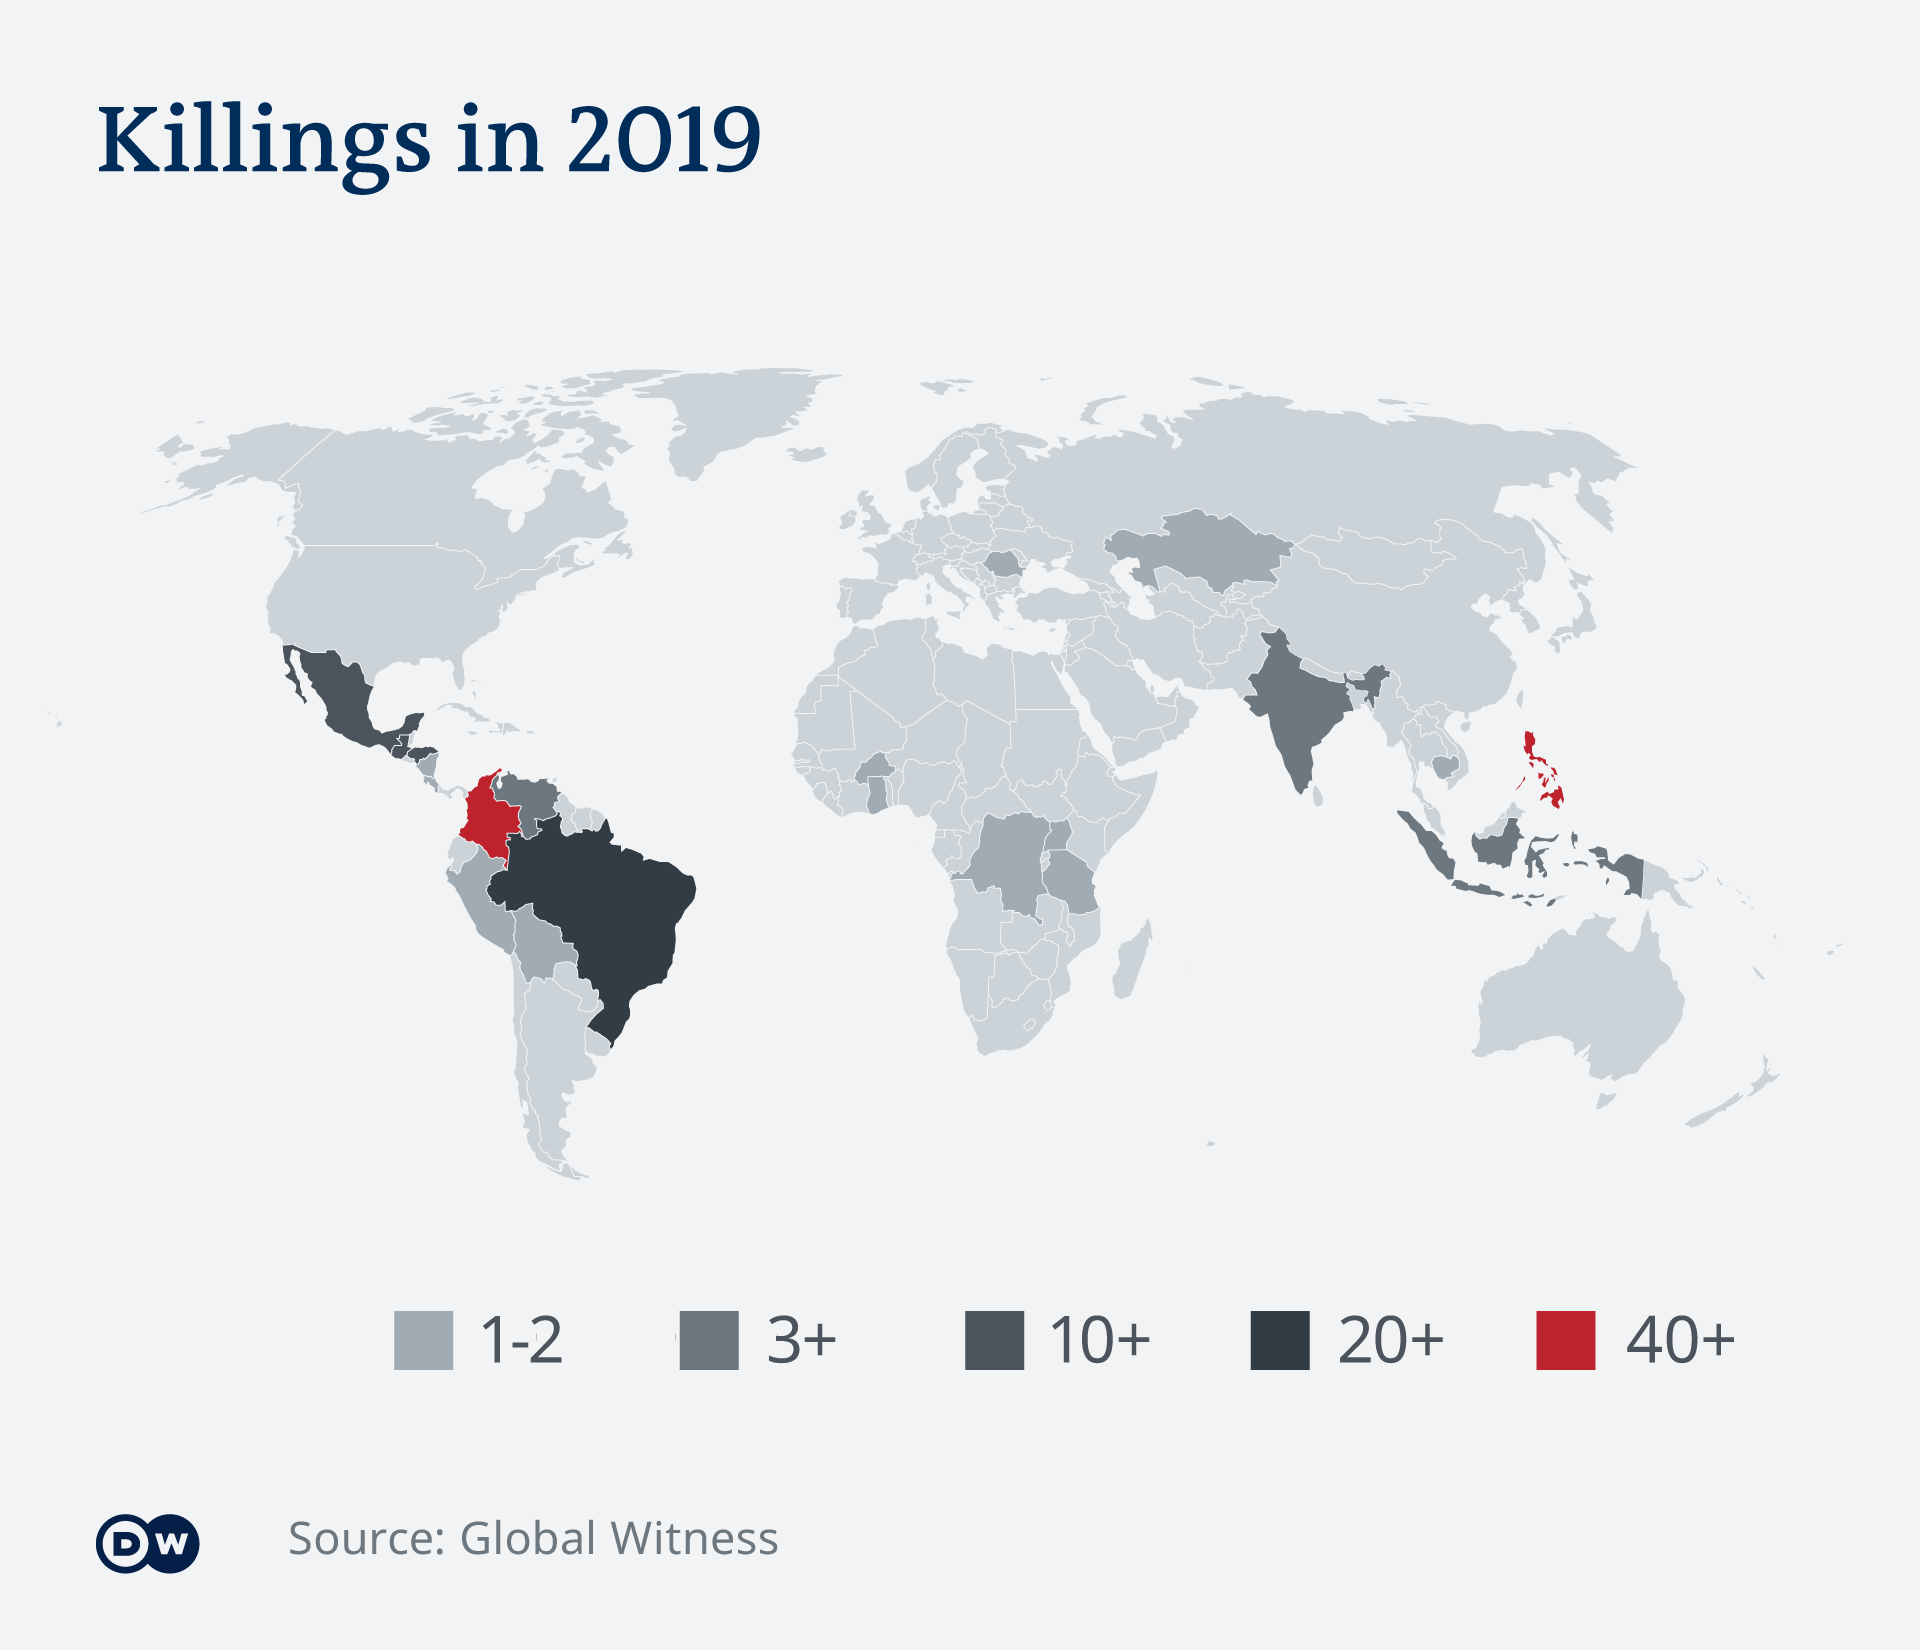 An infographic showing the number of killings in 2019